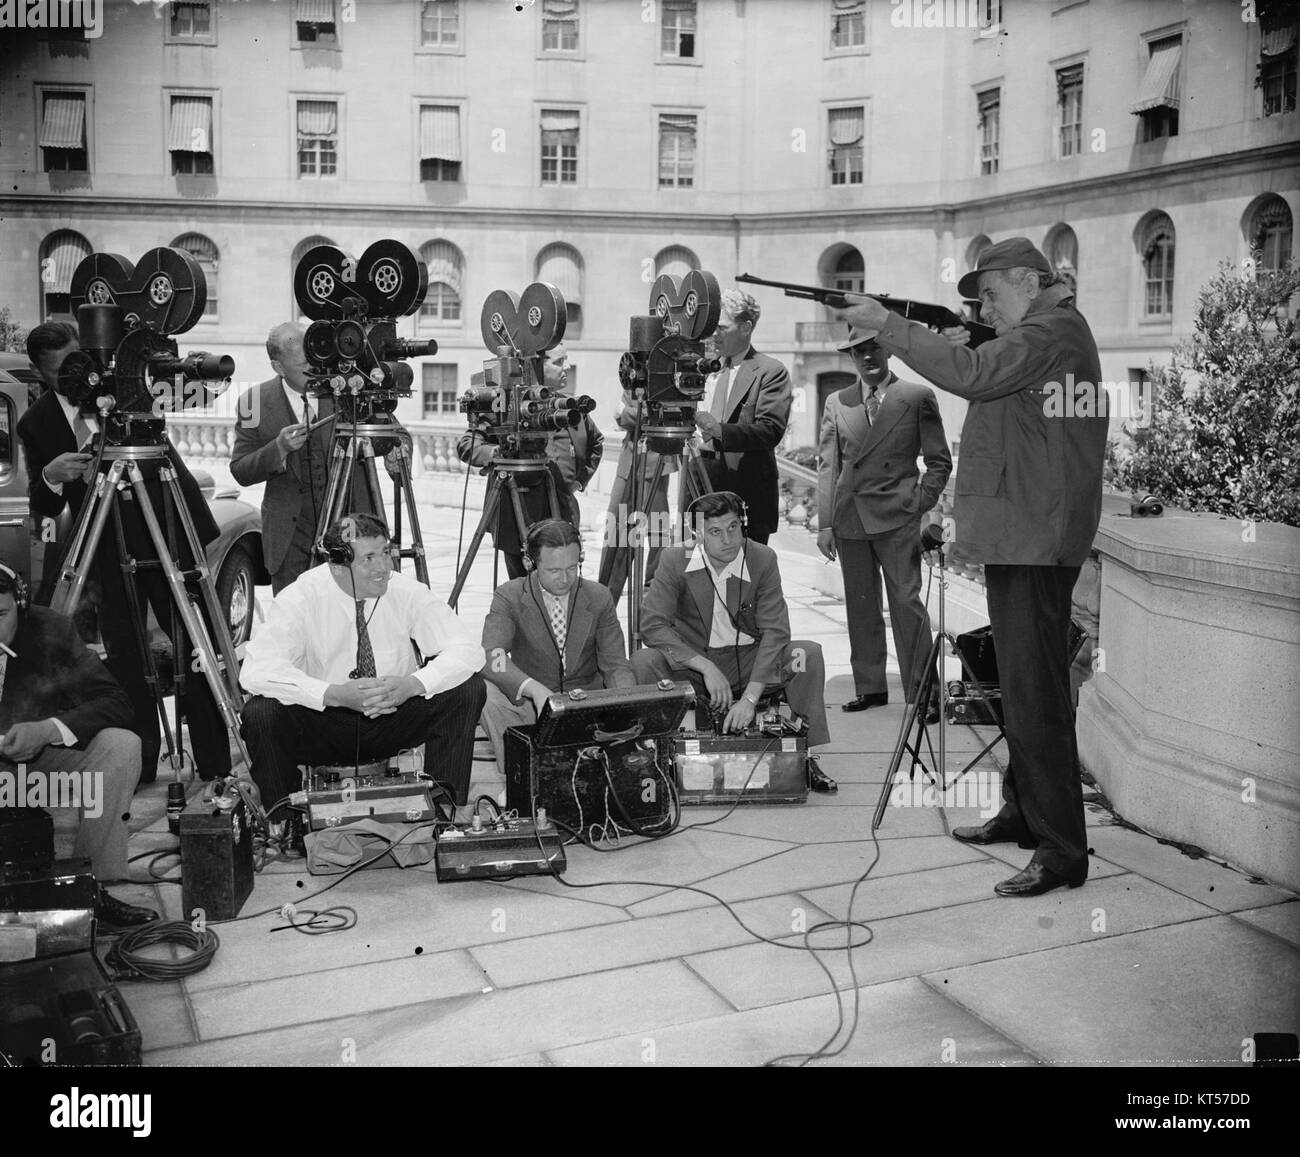 News Cameramen Black and White Stock Photos & Images - Alamy